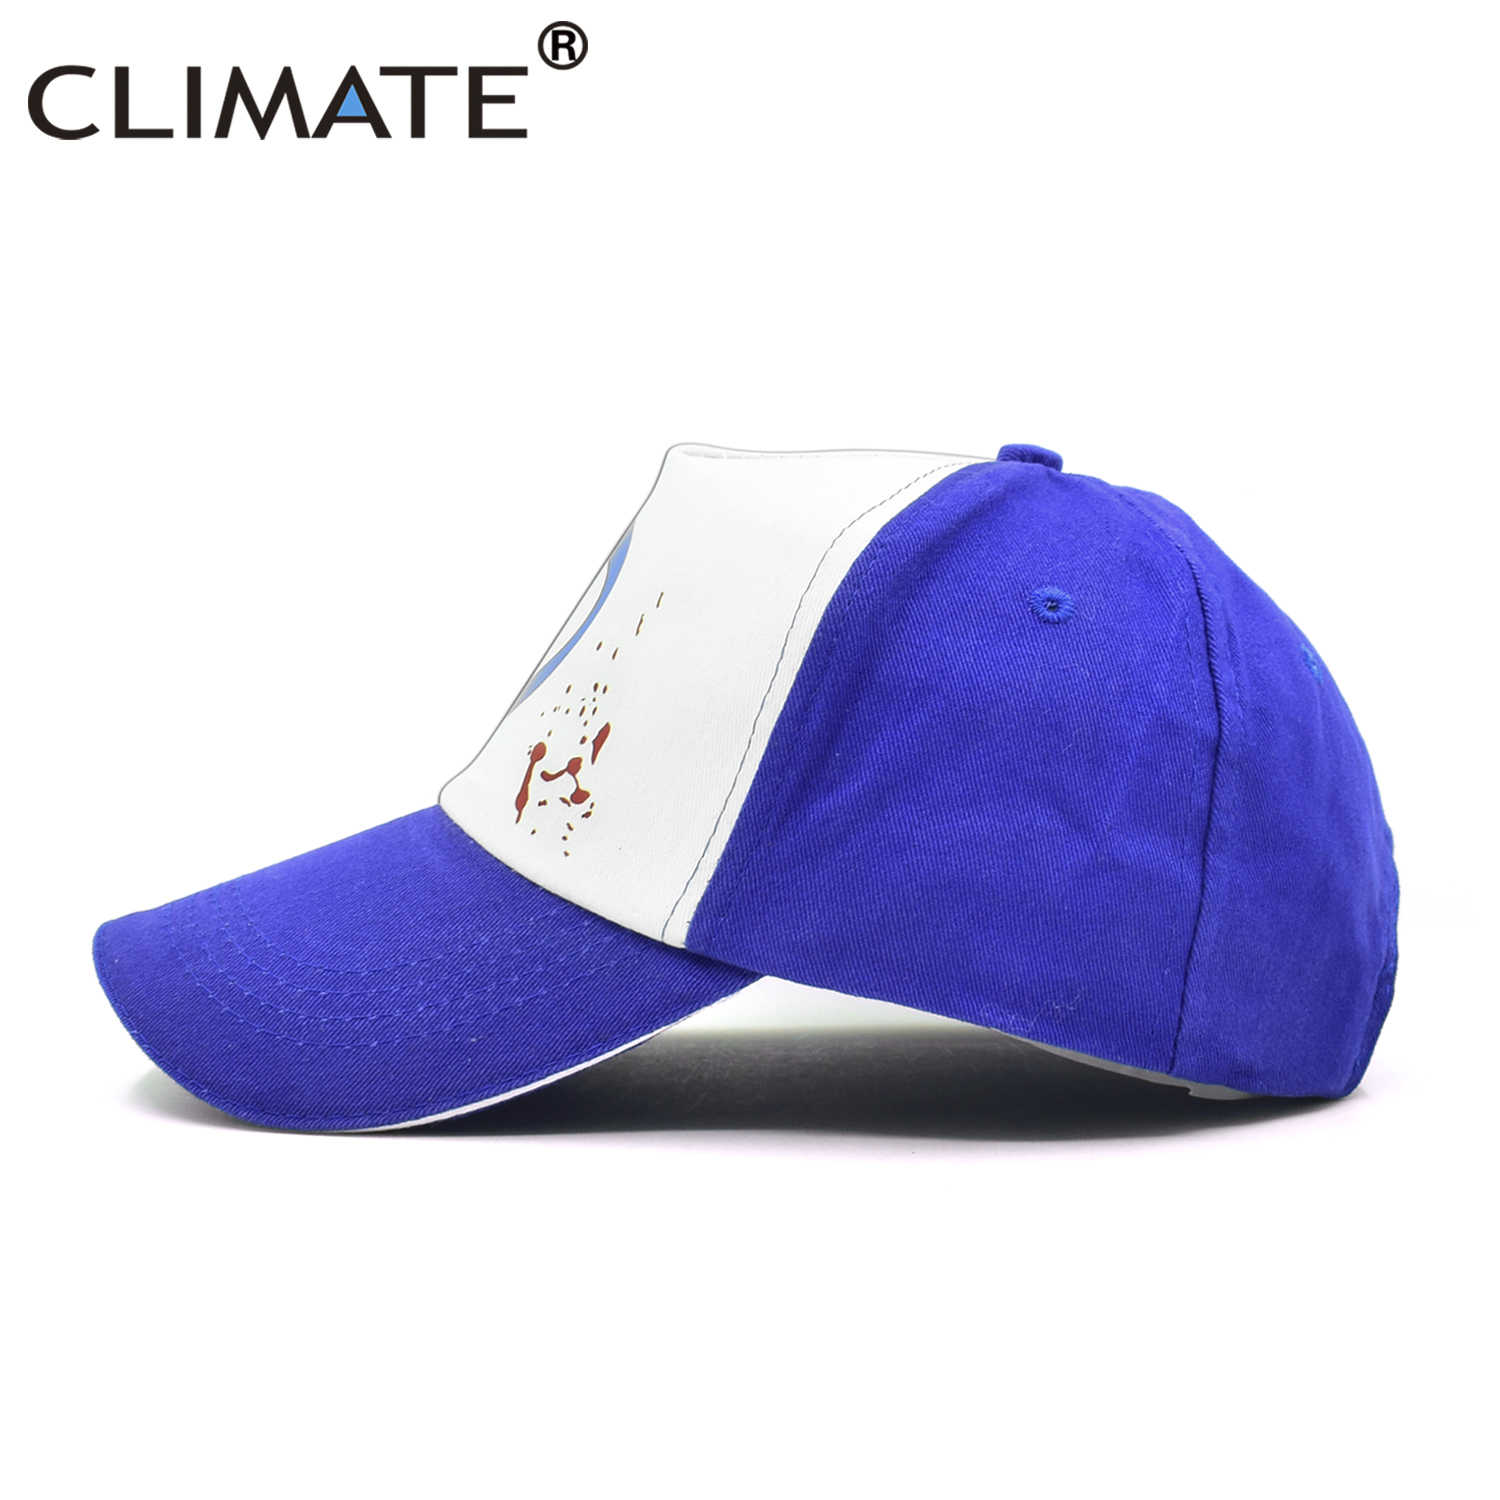 6ad161c60e60b ... CLIMATE Clementine The Walking Dead Game Cap Clementine Hat Cap Clem s  Cosplay Trucker Cap Girl Coser ...